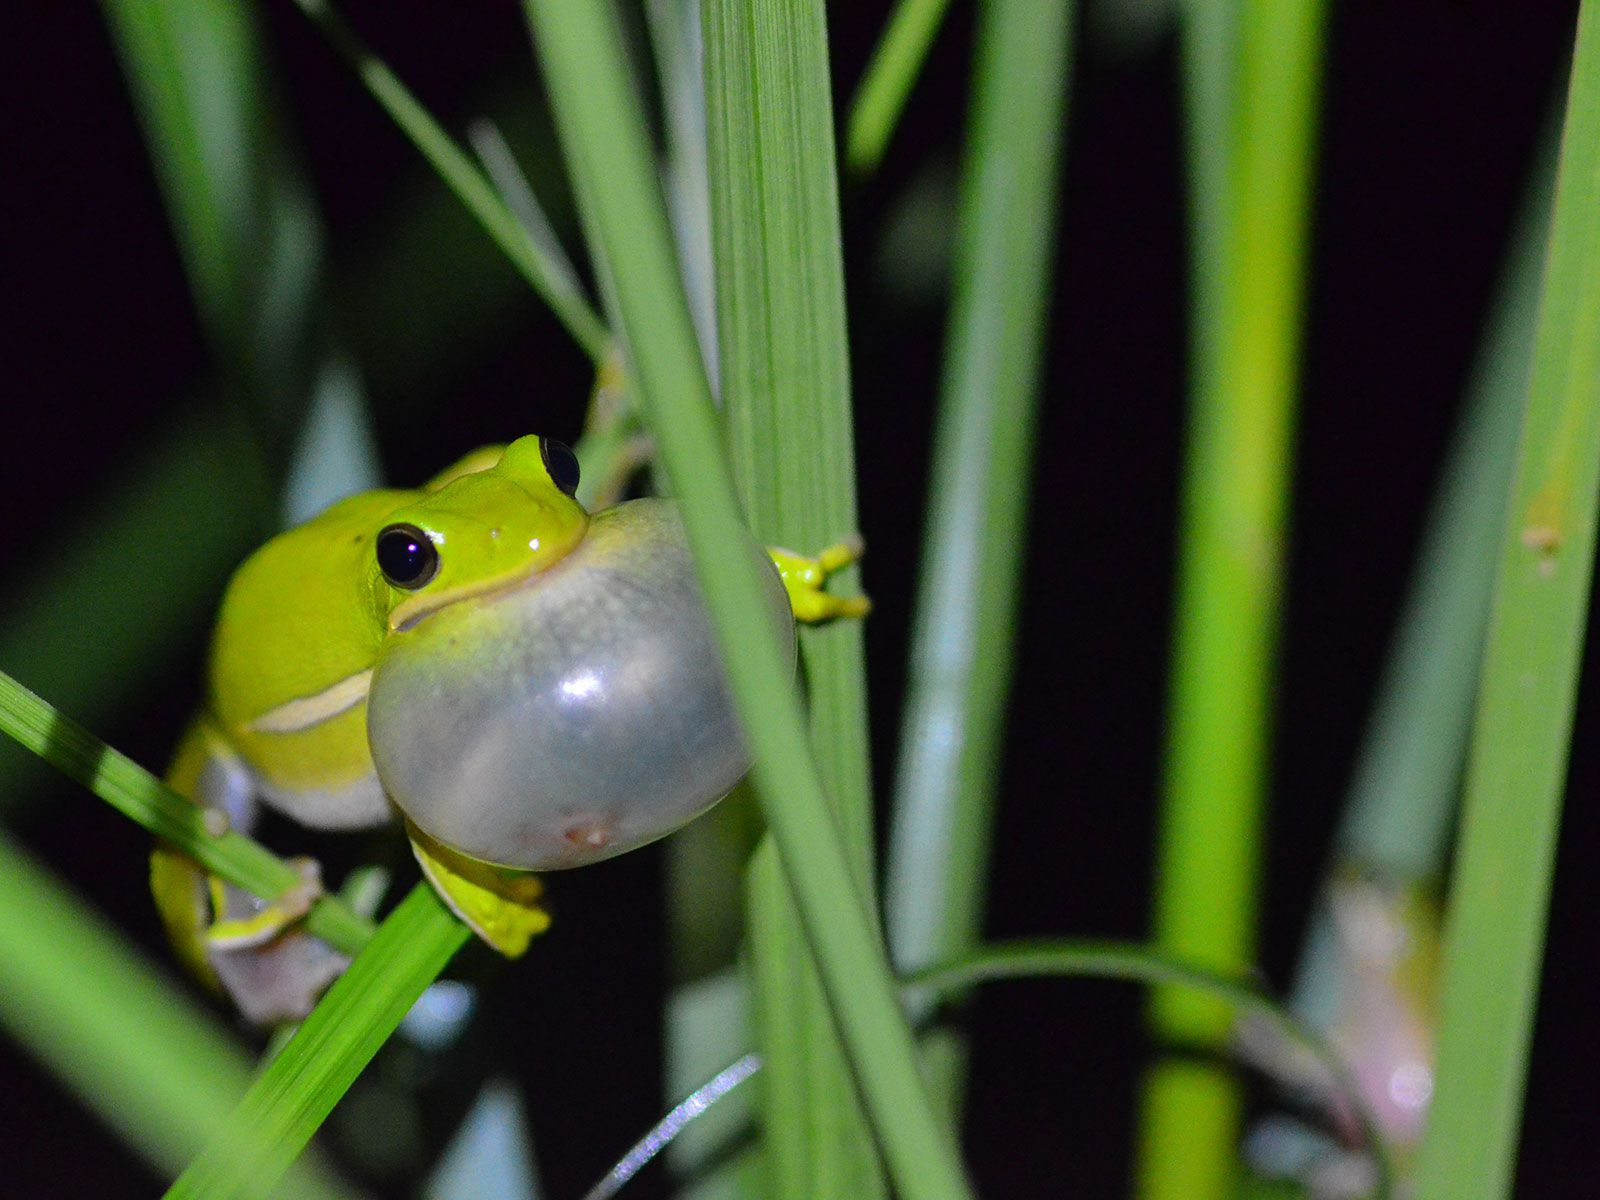 This Frog's Lungs Work Like Noise-Cancelling Headphones